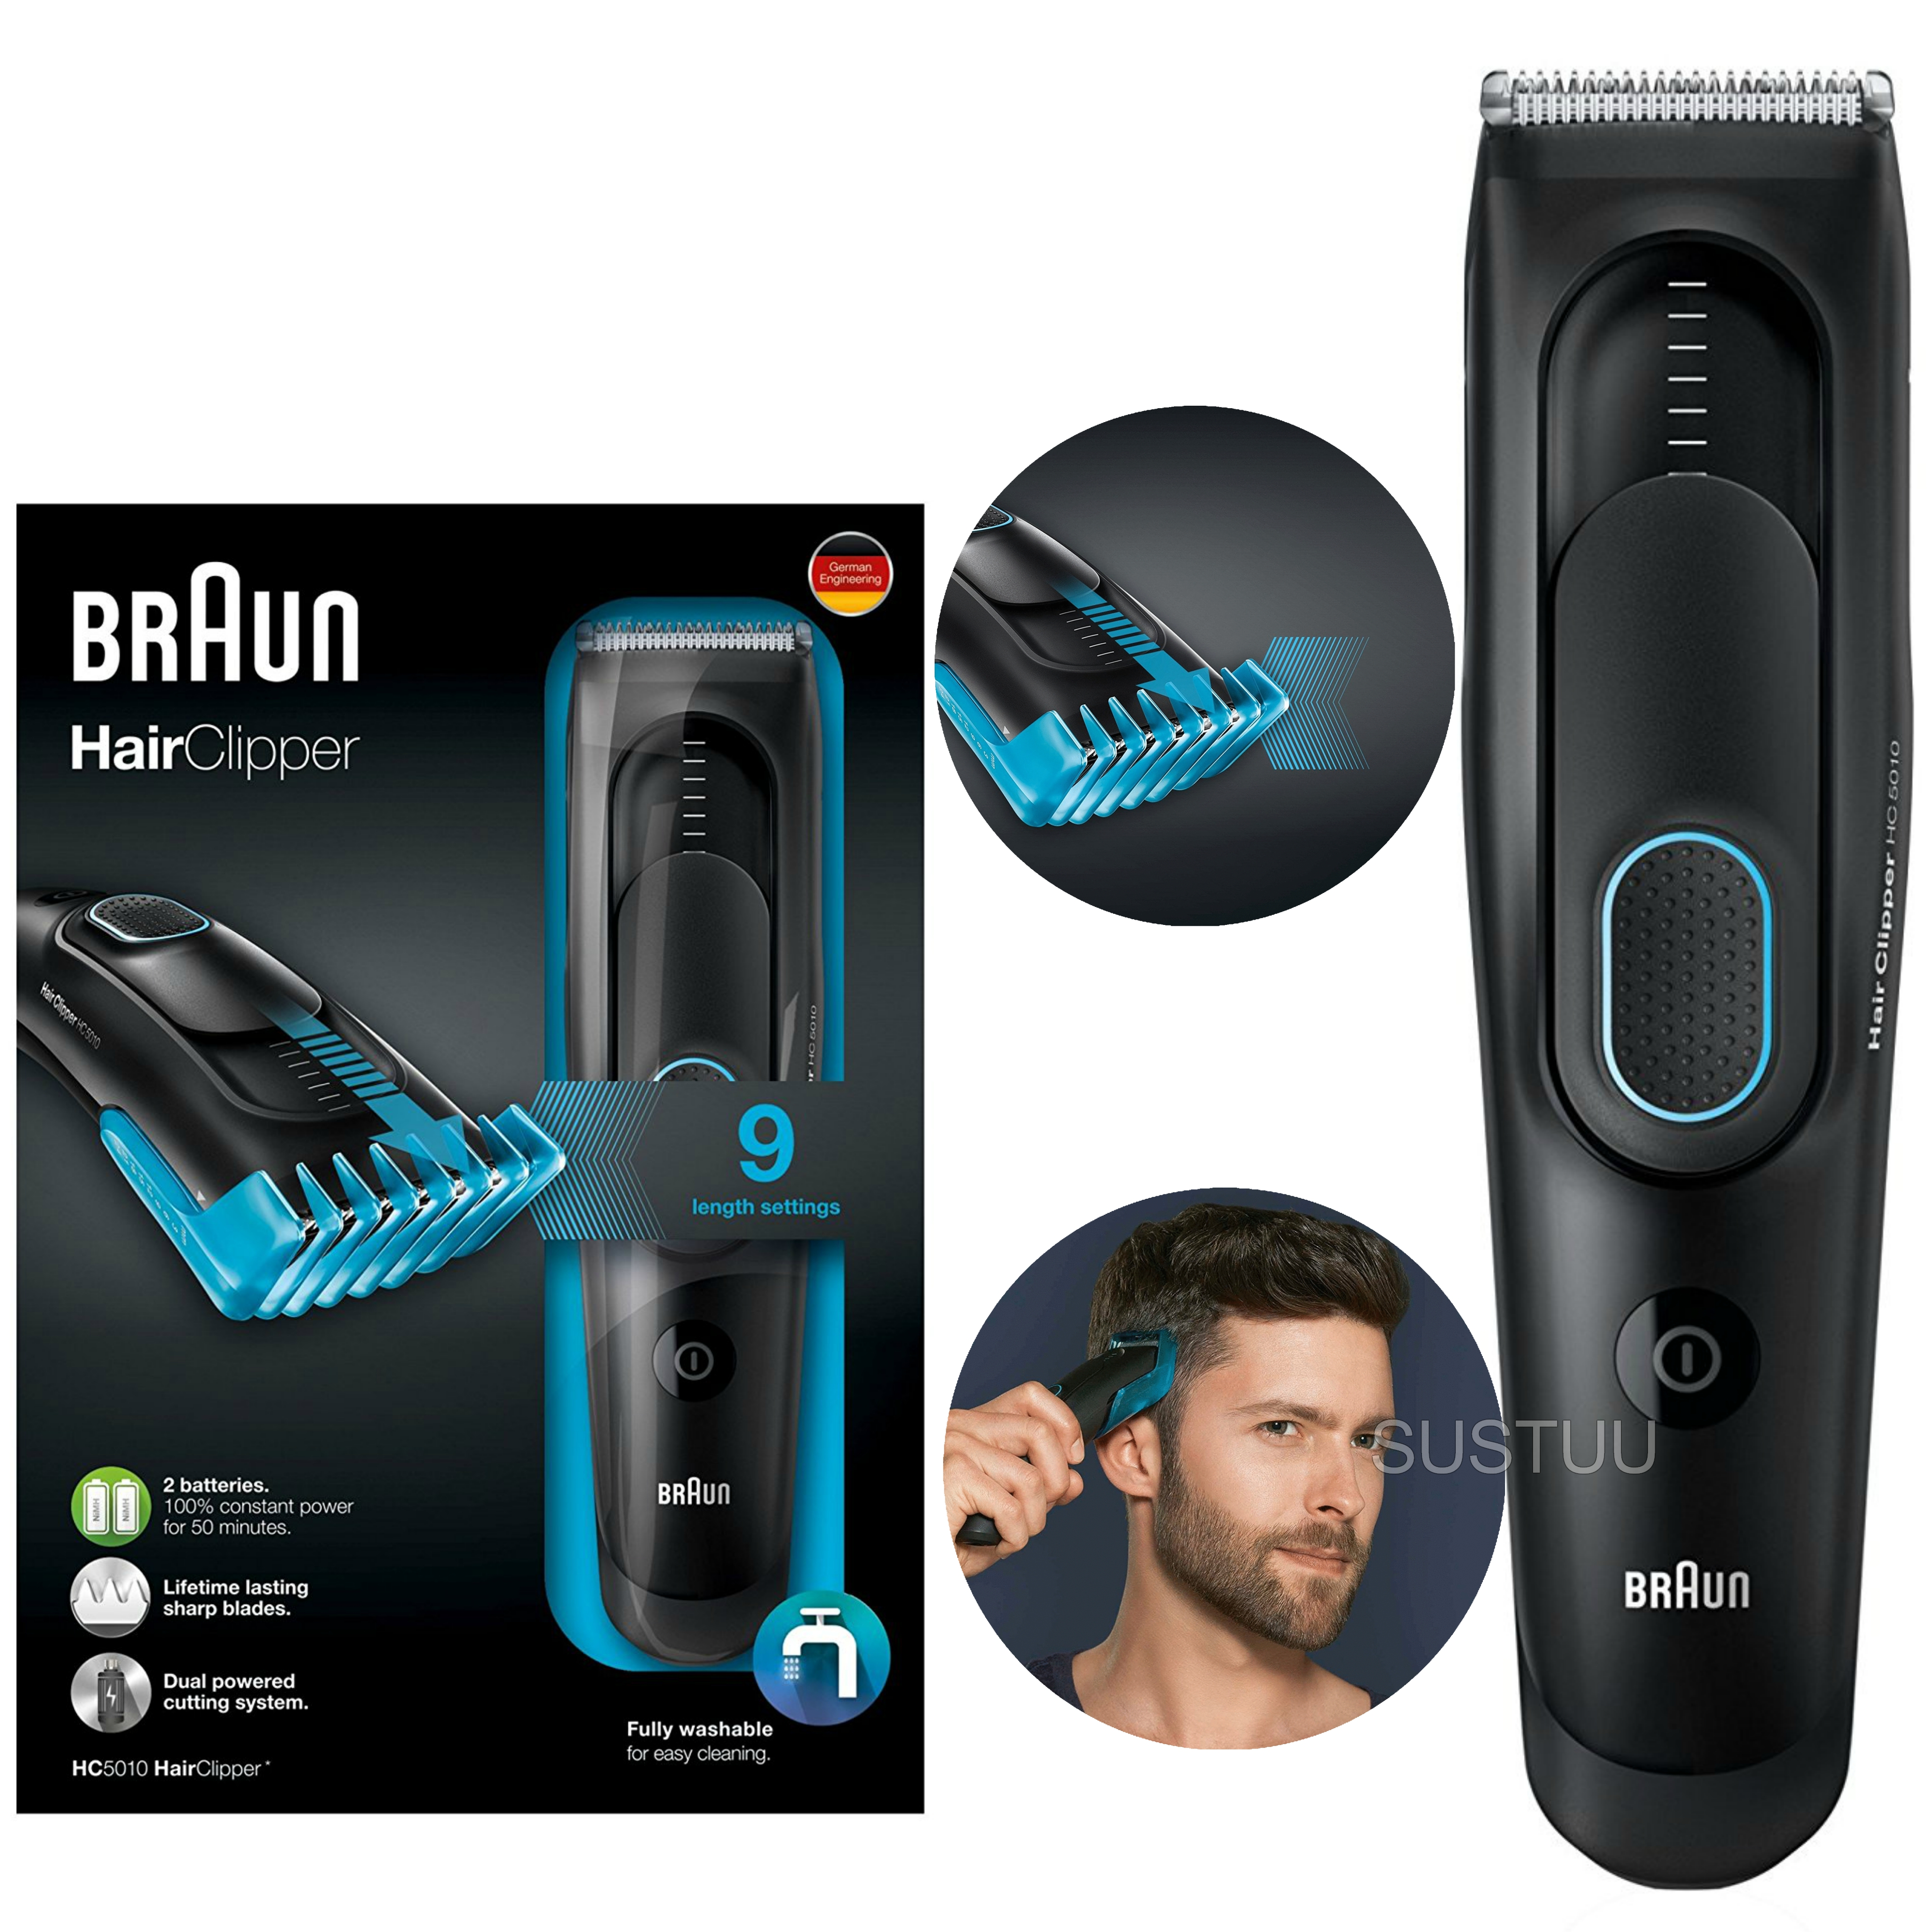 Braun Cordless Hair Clipper/Treamer | Washable & Rechargeable | 9 Length Settings | HC5010